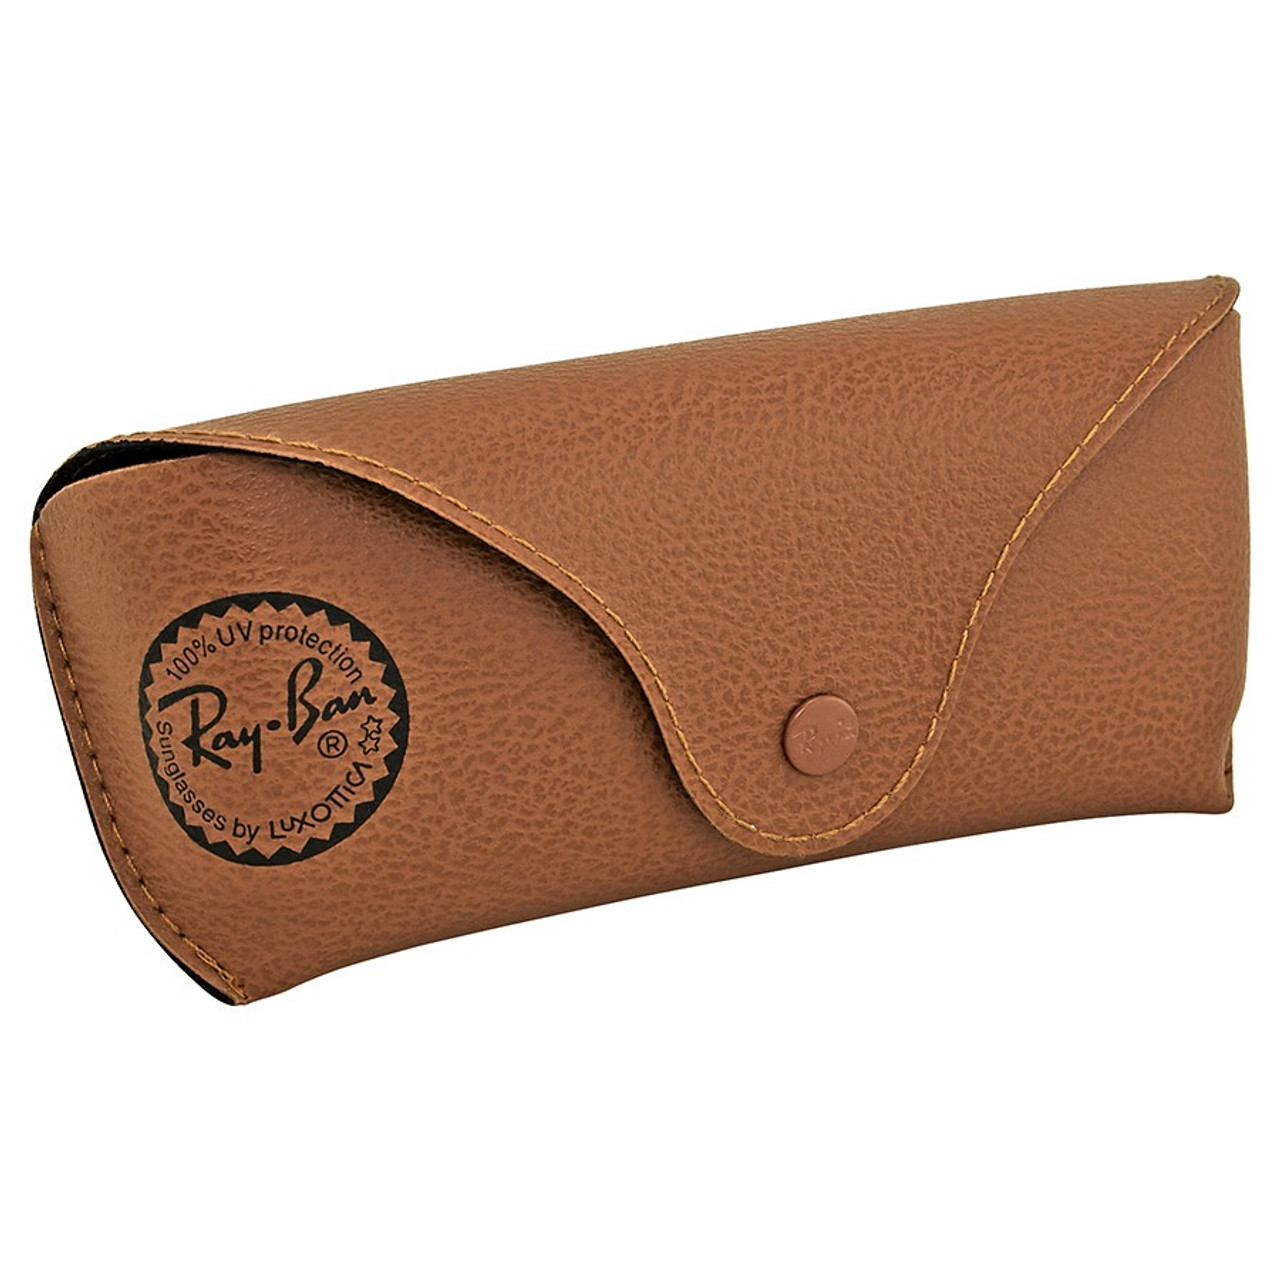 5c230588fe02 Ray Ban Sunglasses Case - Brown Leather (CASE ONLY) - Lily's Design Co.